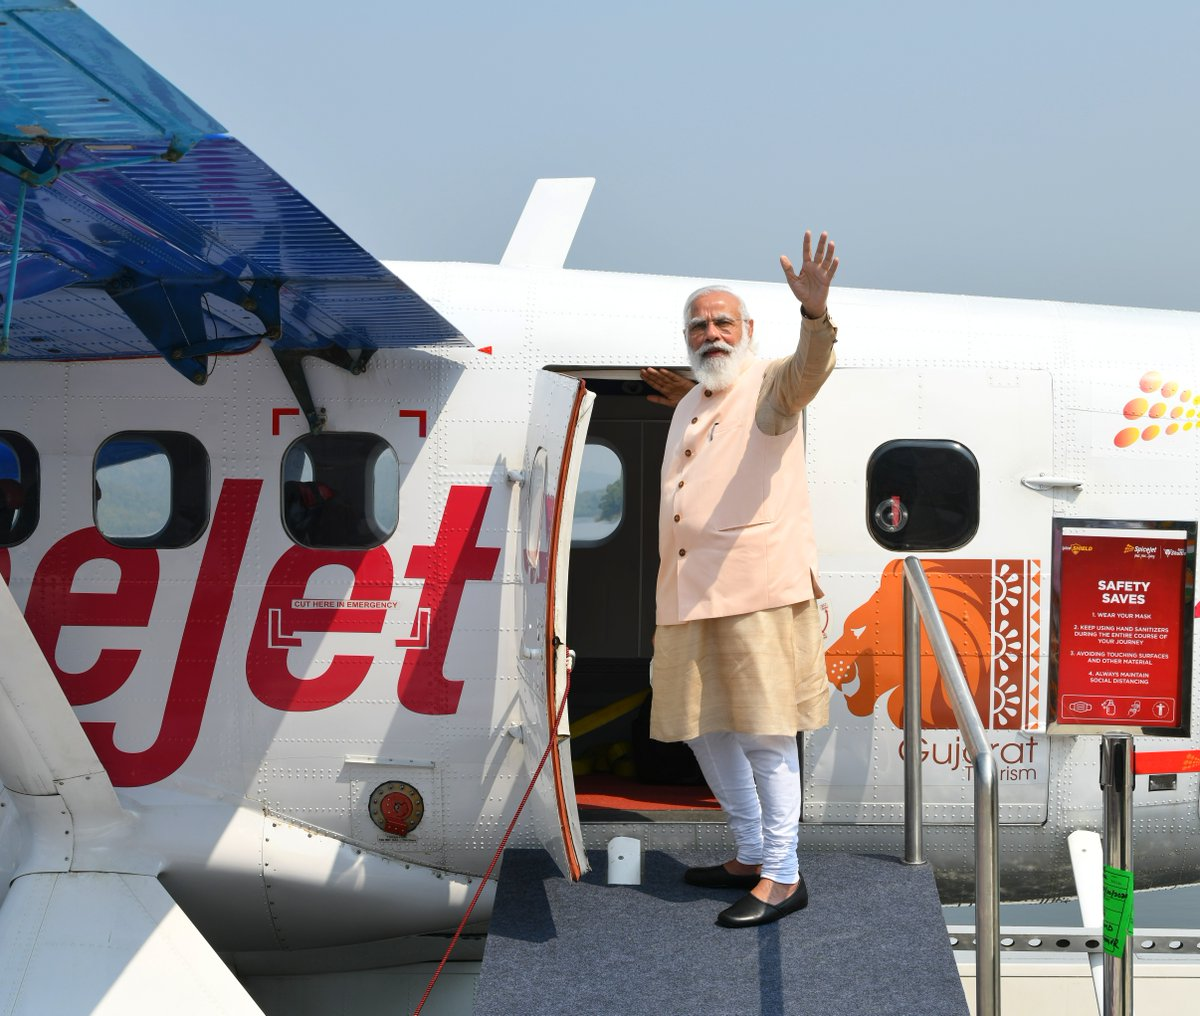 Next potential Seaplane route in Gujarat could be Statue of Unity to Surat: Spicejet CMD Ajay Singh